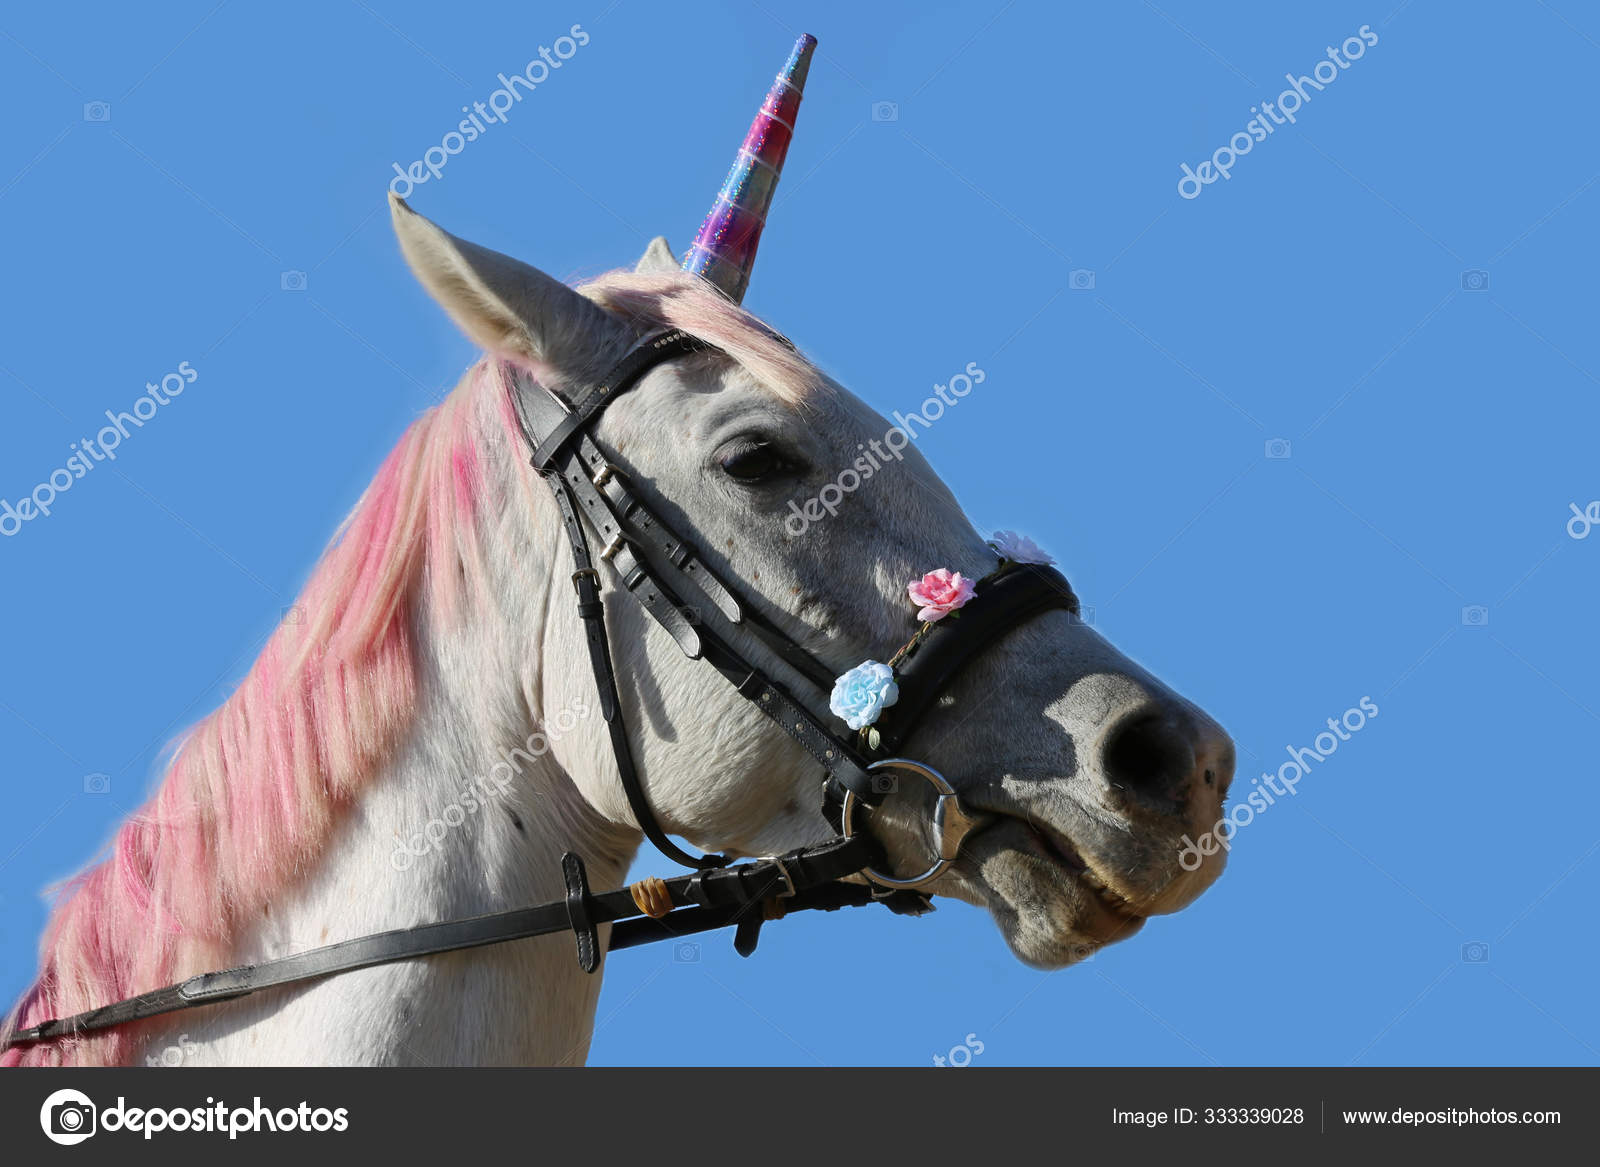 Beautiful Magical Unicorn Horse Realistic Photography Stock Photo C Accept001 333339028